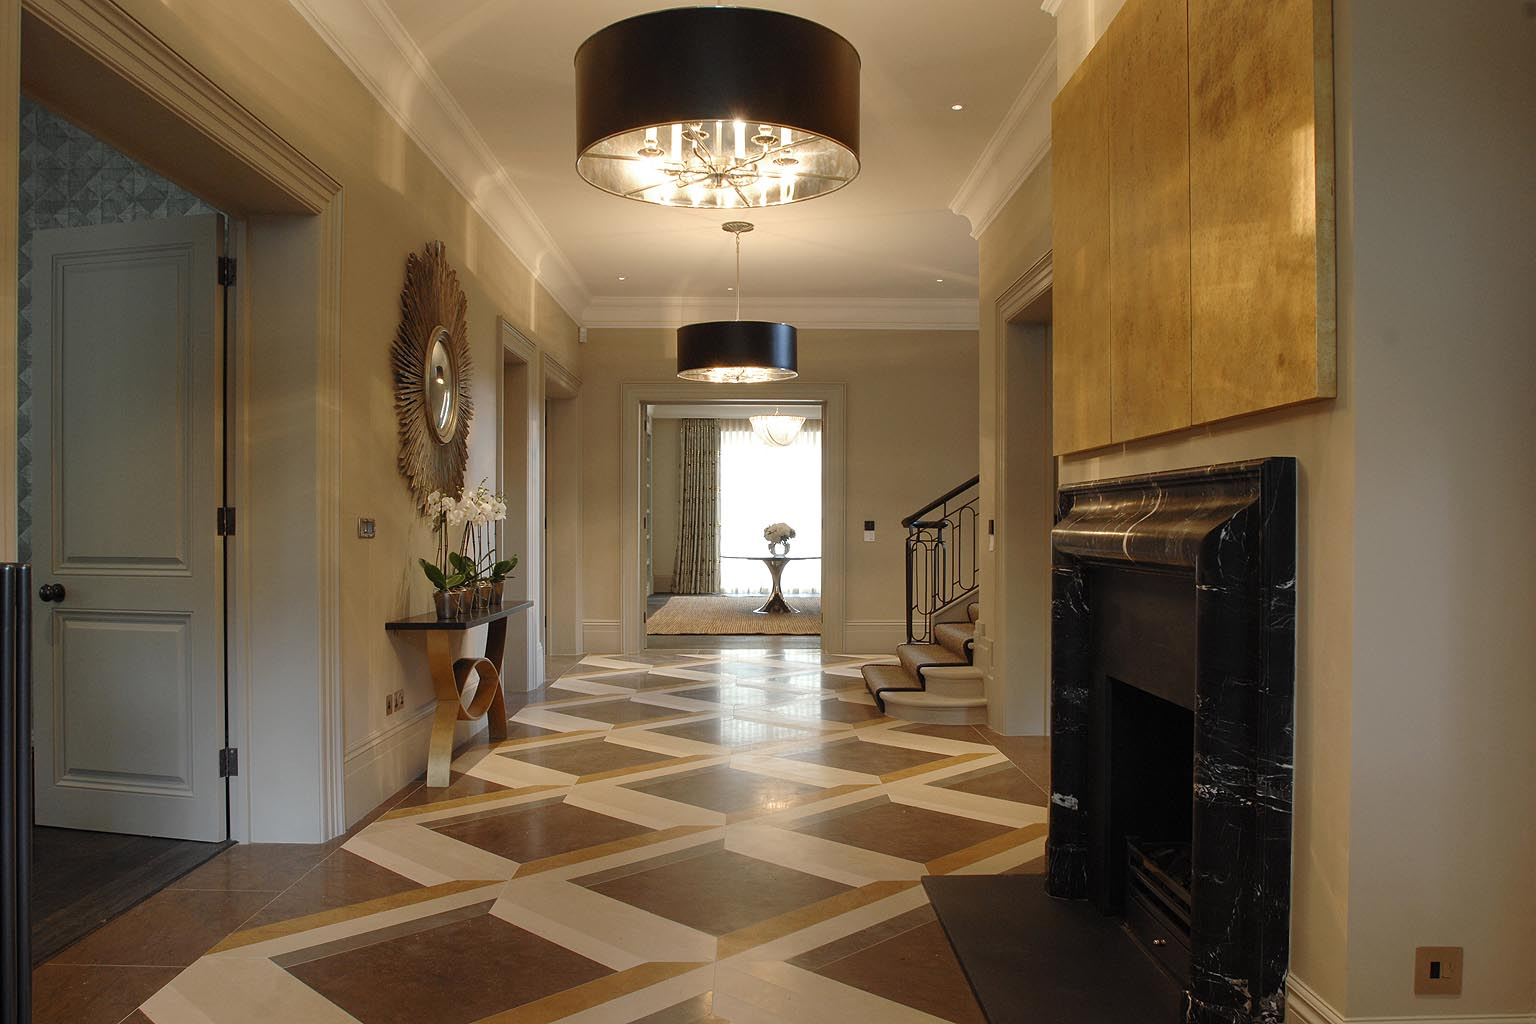 cool hallway lighting. Ceiling Light Shades For Hallways The Best Wire Lampshade Ideas On Cool Hallway Lighting